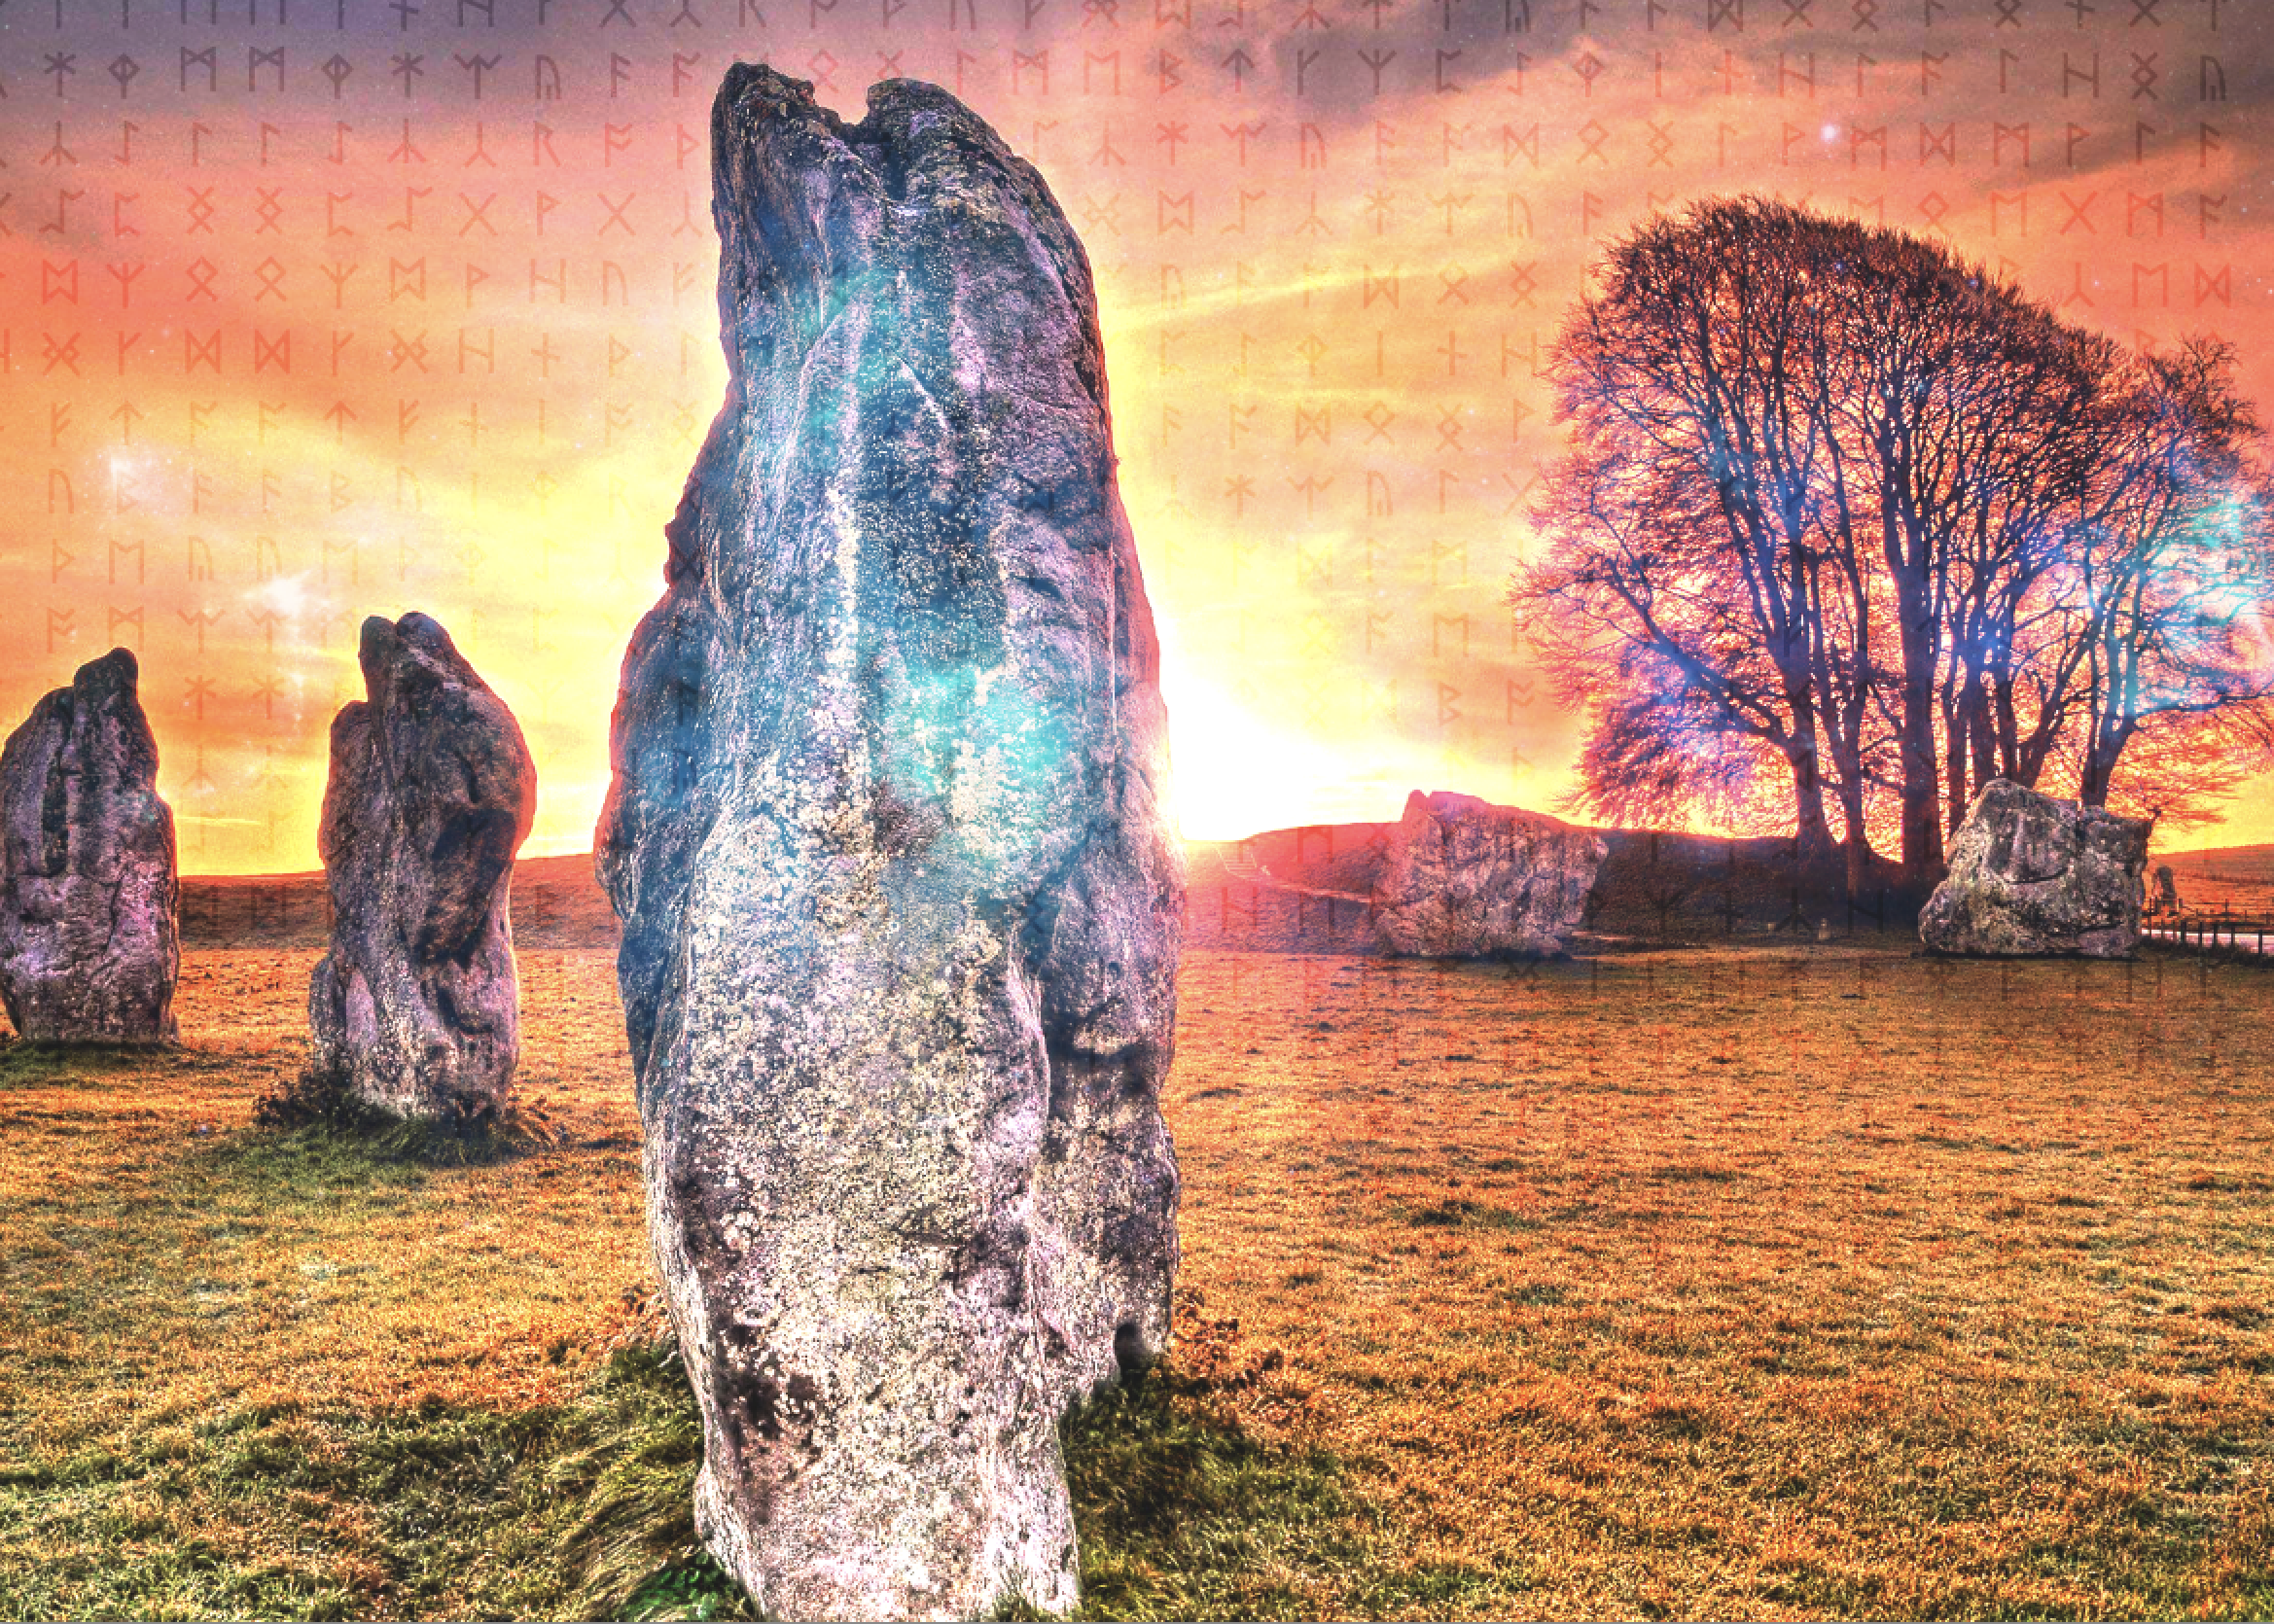 The Original Matrix of Avebury 33:33